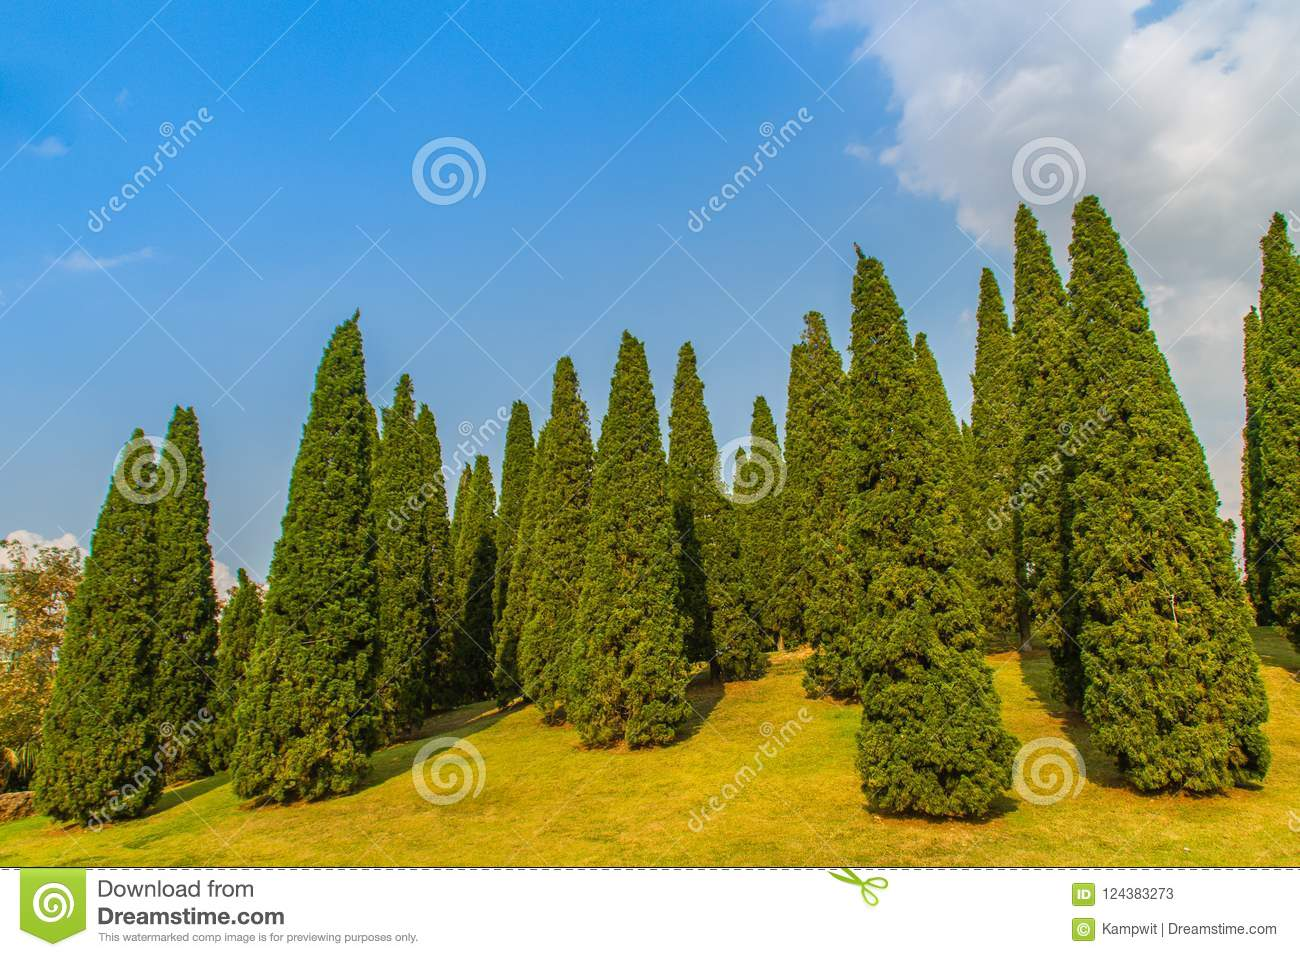 Beautiful small hill landscape with tall pine trees on green grass field and blue sky white cloud background. Juniperus chinensis